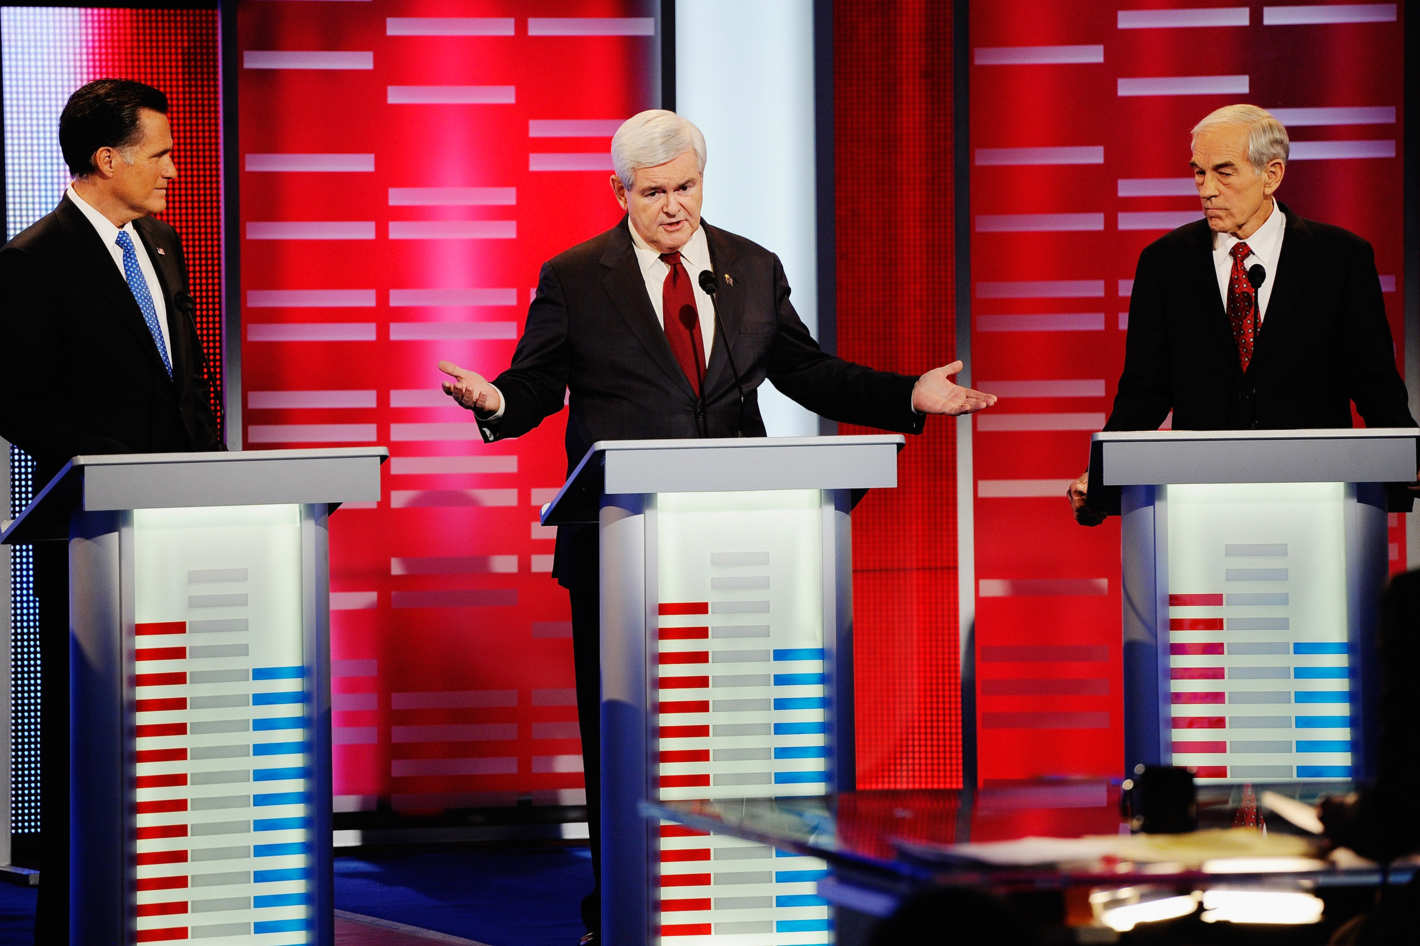 DES MOINES, IA - DECEMBER 10:  Former speaker of the House Newt Gingrich (C) speaks while former Massachusetts Gov. Mitt Romney (L) and U.S. Rep. Ron Paul (R-TX) look on during th ABC News GOP Presidential debate on the campus of Drake University on December 10, 2011 in Des Moines, Iowa. Rivals were expected to target front runner Gingrich in the debate hosted by ABC News, Yahoo News, WOI-TV, The Des Moines Register and the Iowa GOP.  (Photo by Kevork Djansezian/Getty Images)